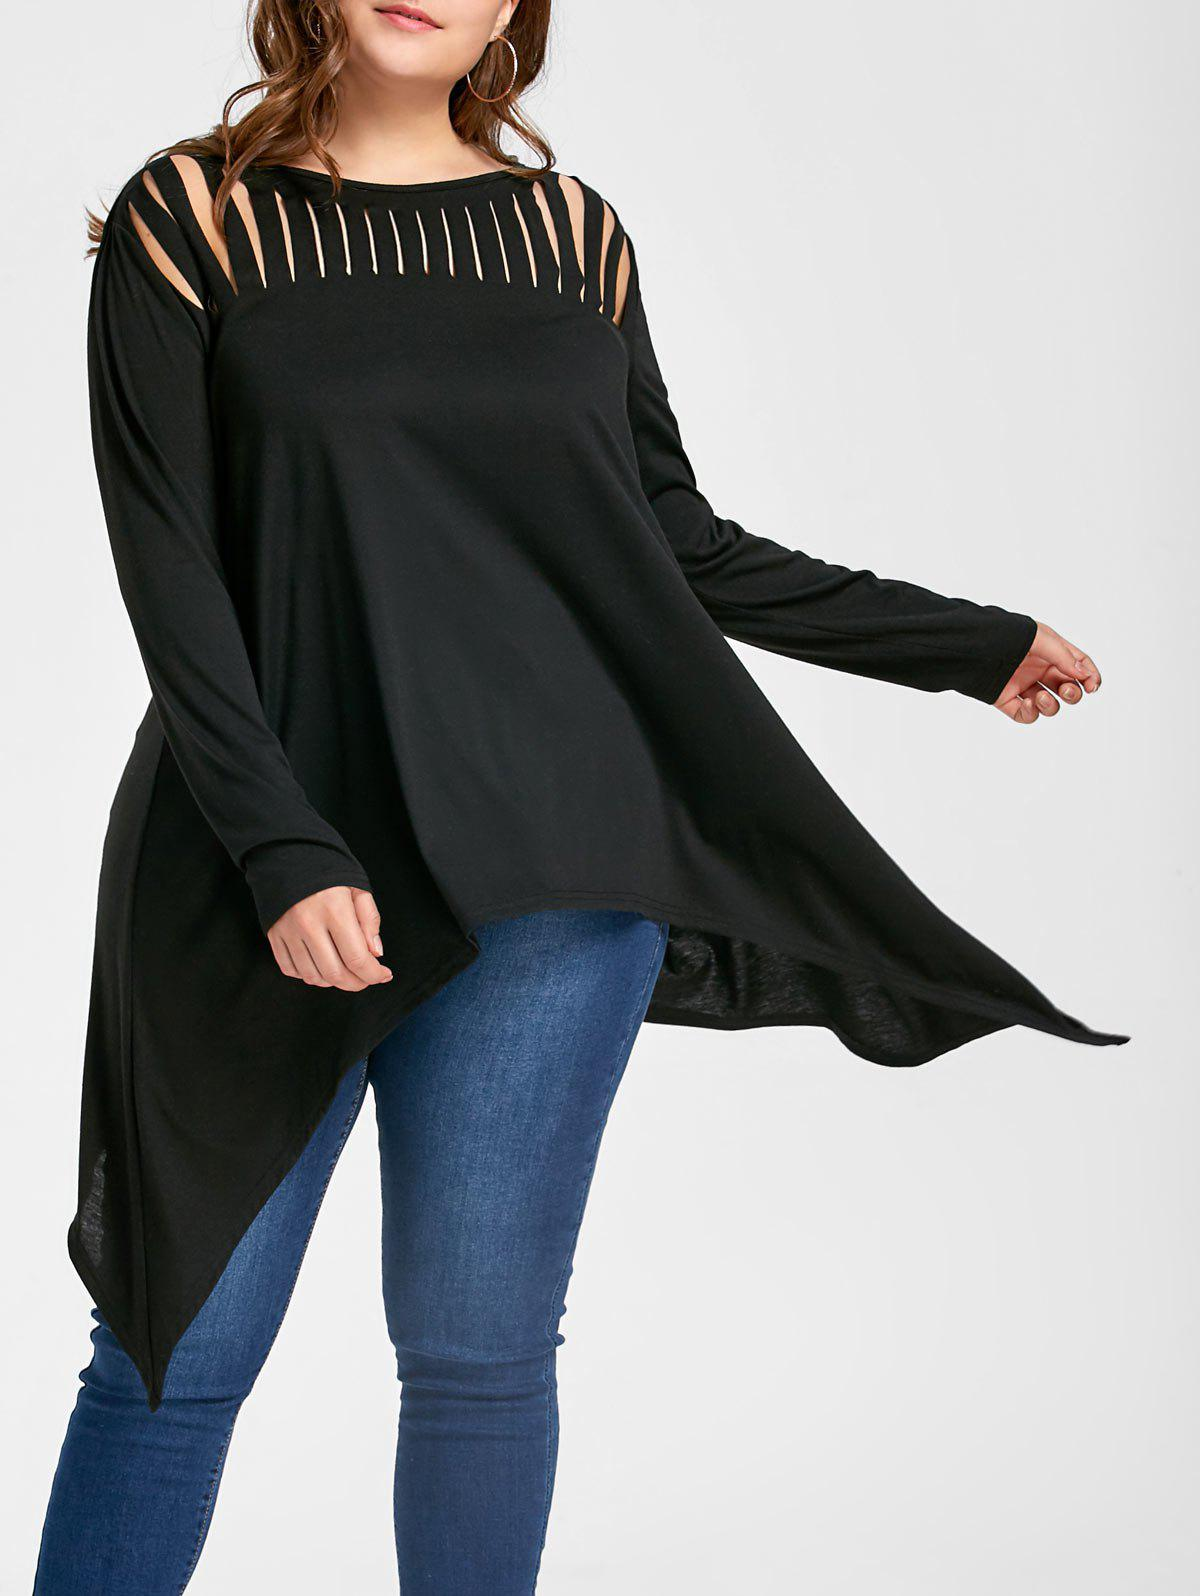 Plus Size Ripped Crescent Hem Tunic TopWOMEN<br><br>Size: 4XL; Color: BLACK; Material: Polyester,Spandex; Shirt Length: Long; Sleeve Length: Full; Collar: Slash Neck; Style: Casual; Season: Fall,Spring; Pattern Type: Solid; Weight: 0.3300kg; Package Contents: 1 x Top;